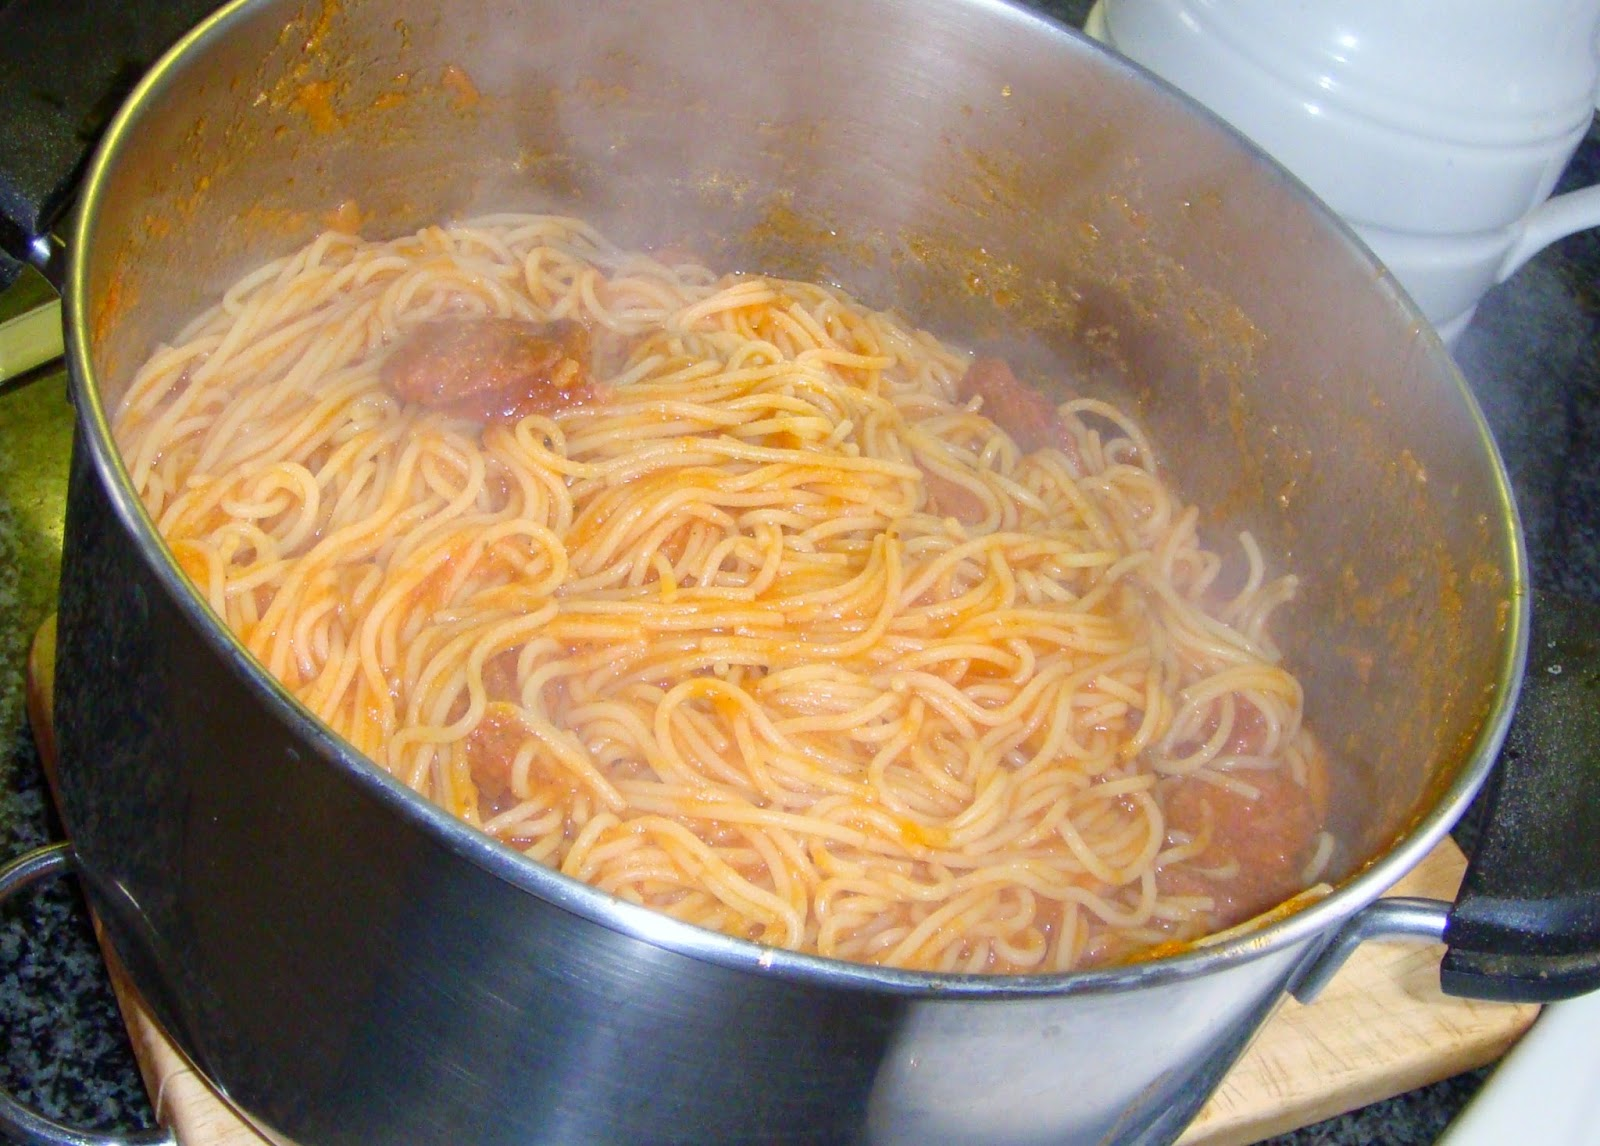 Mix sauce with the cooked spaghetti